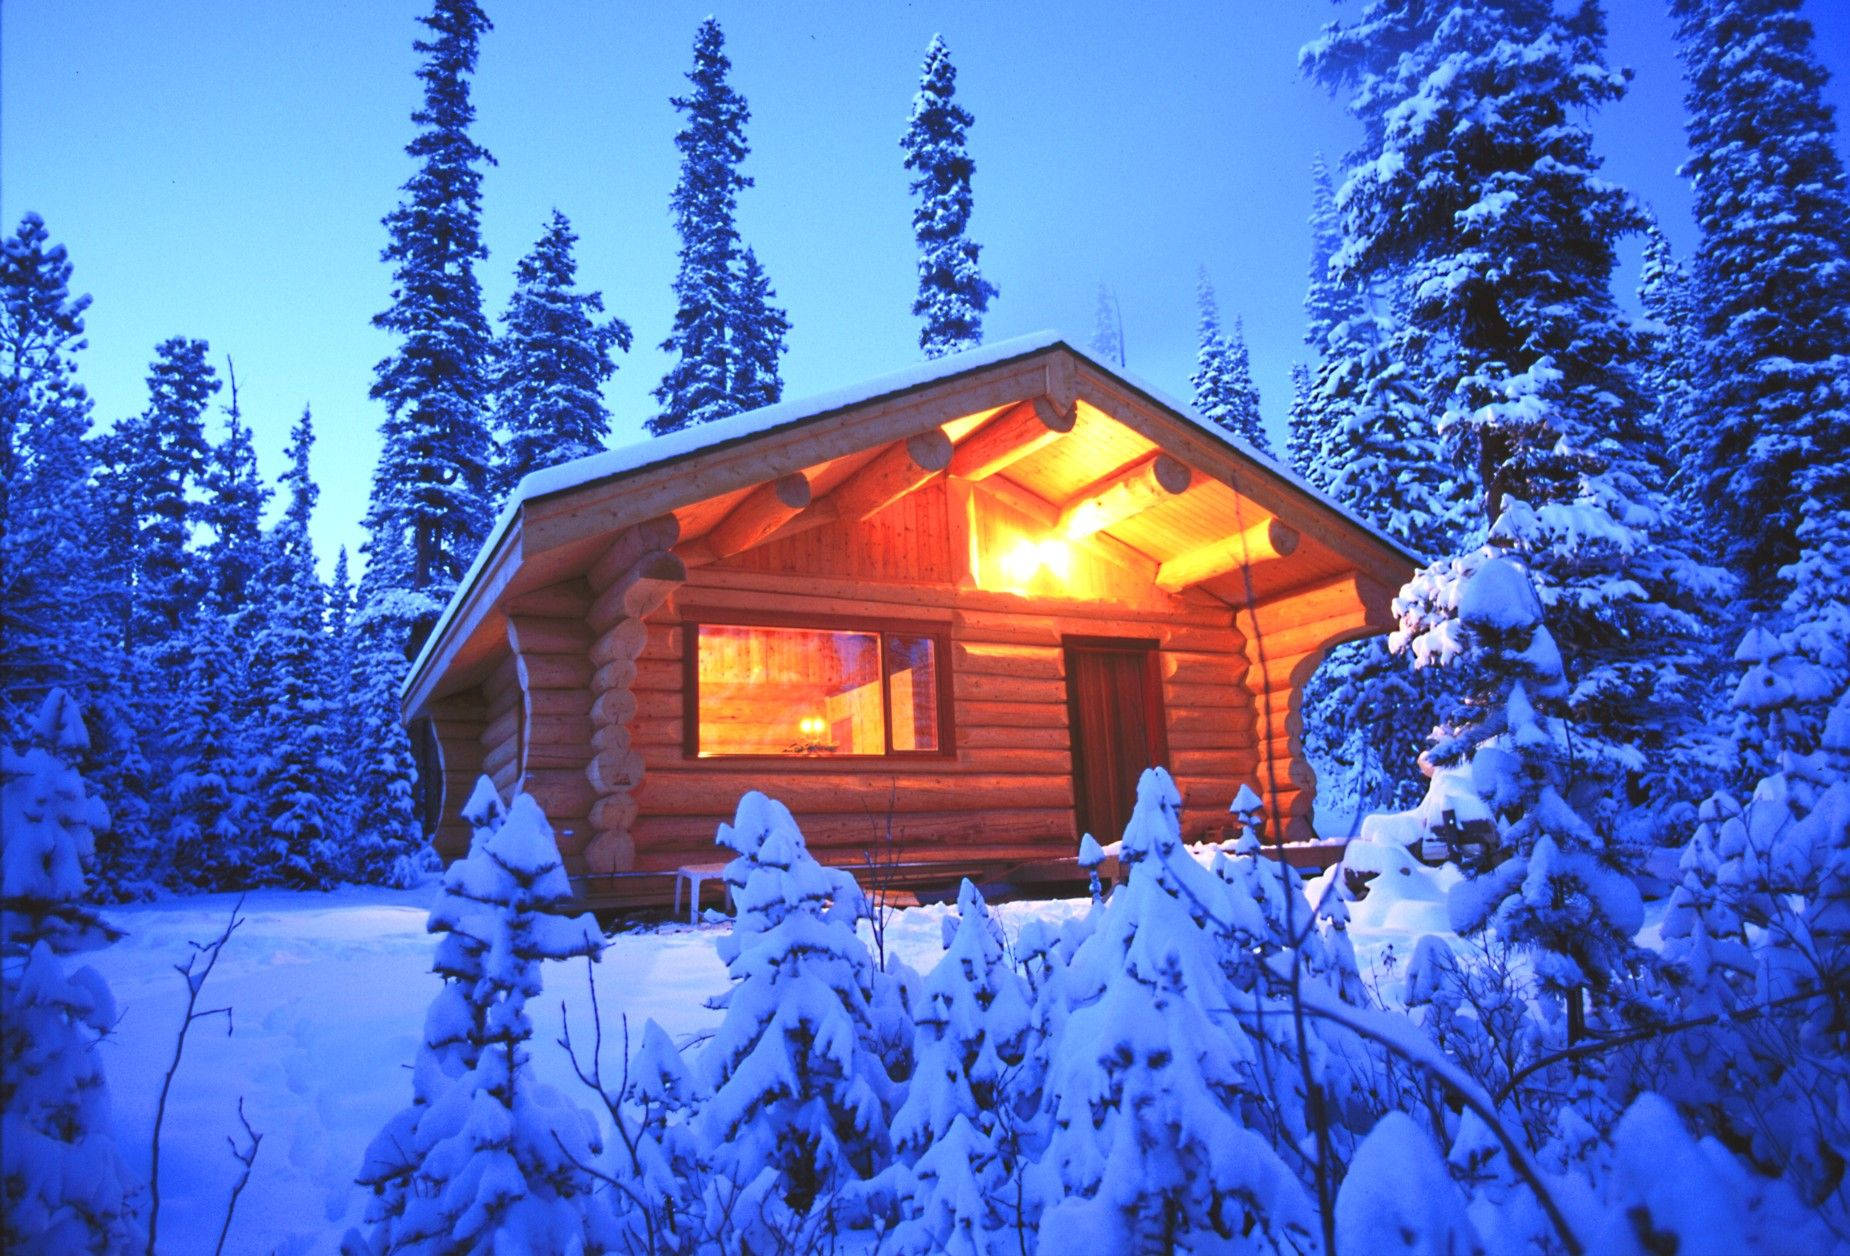 winter snow - Bing Images | Winter Wonderland | Cabin, Secluded